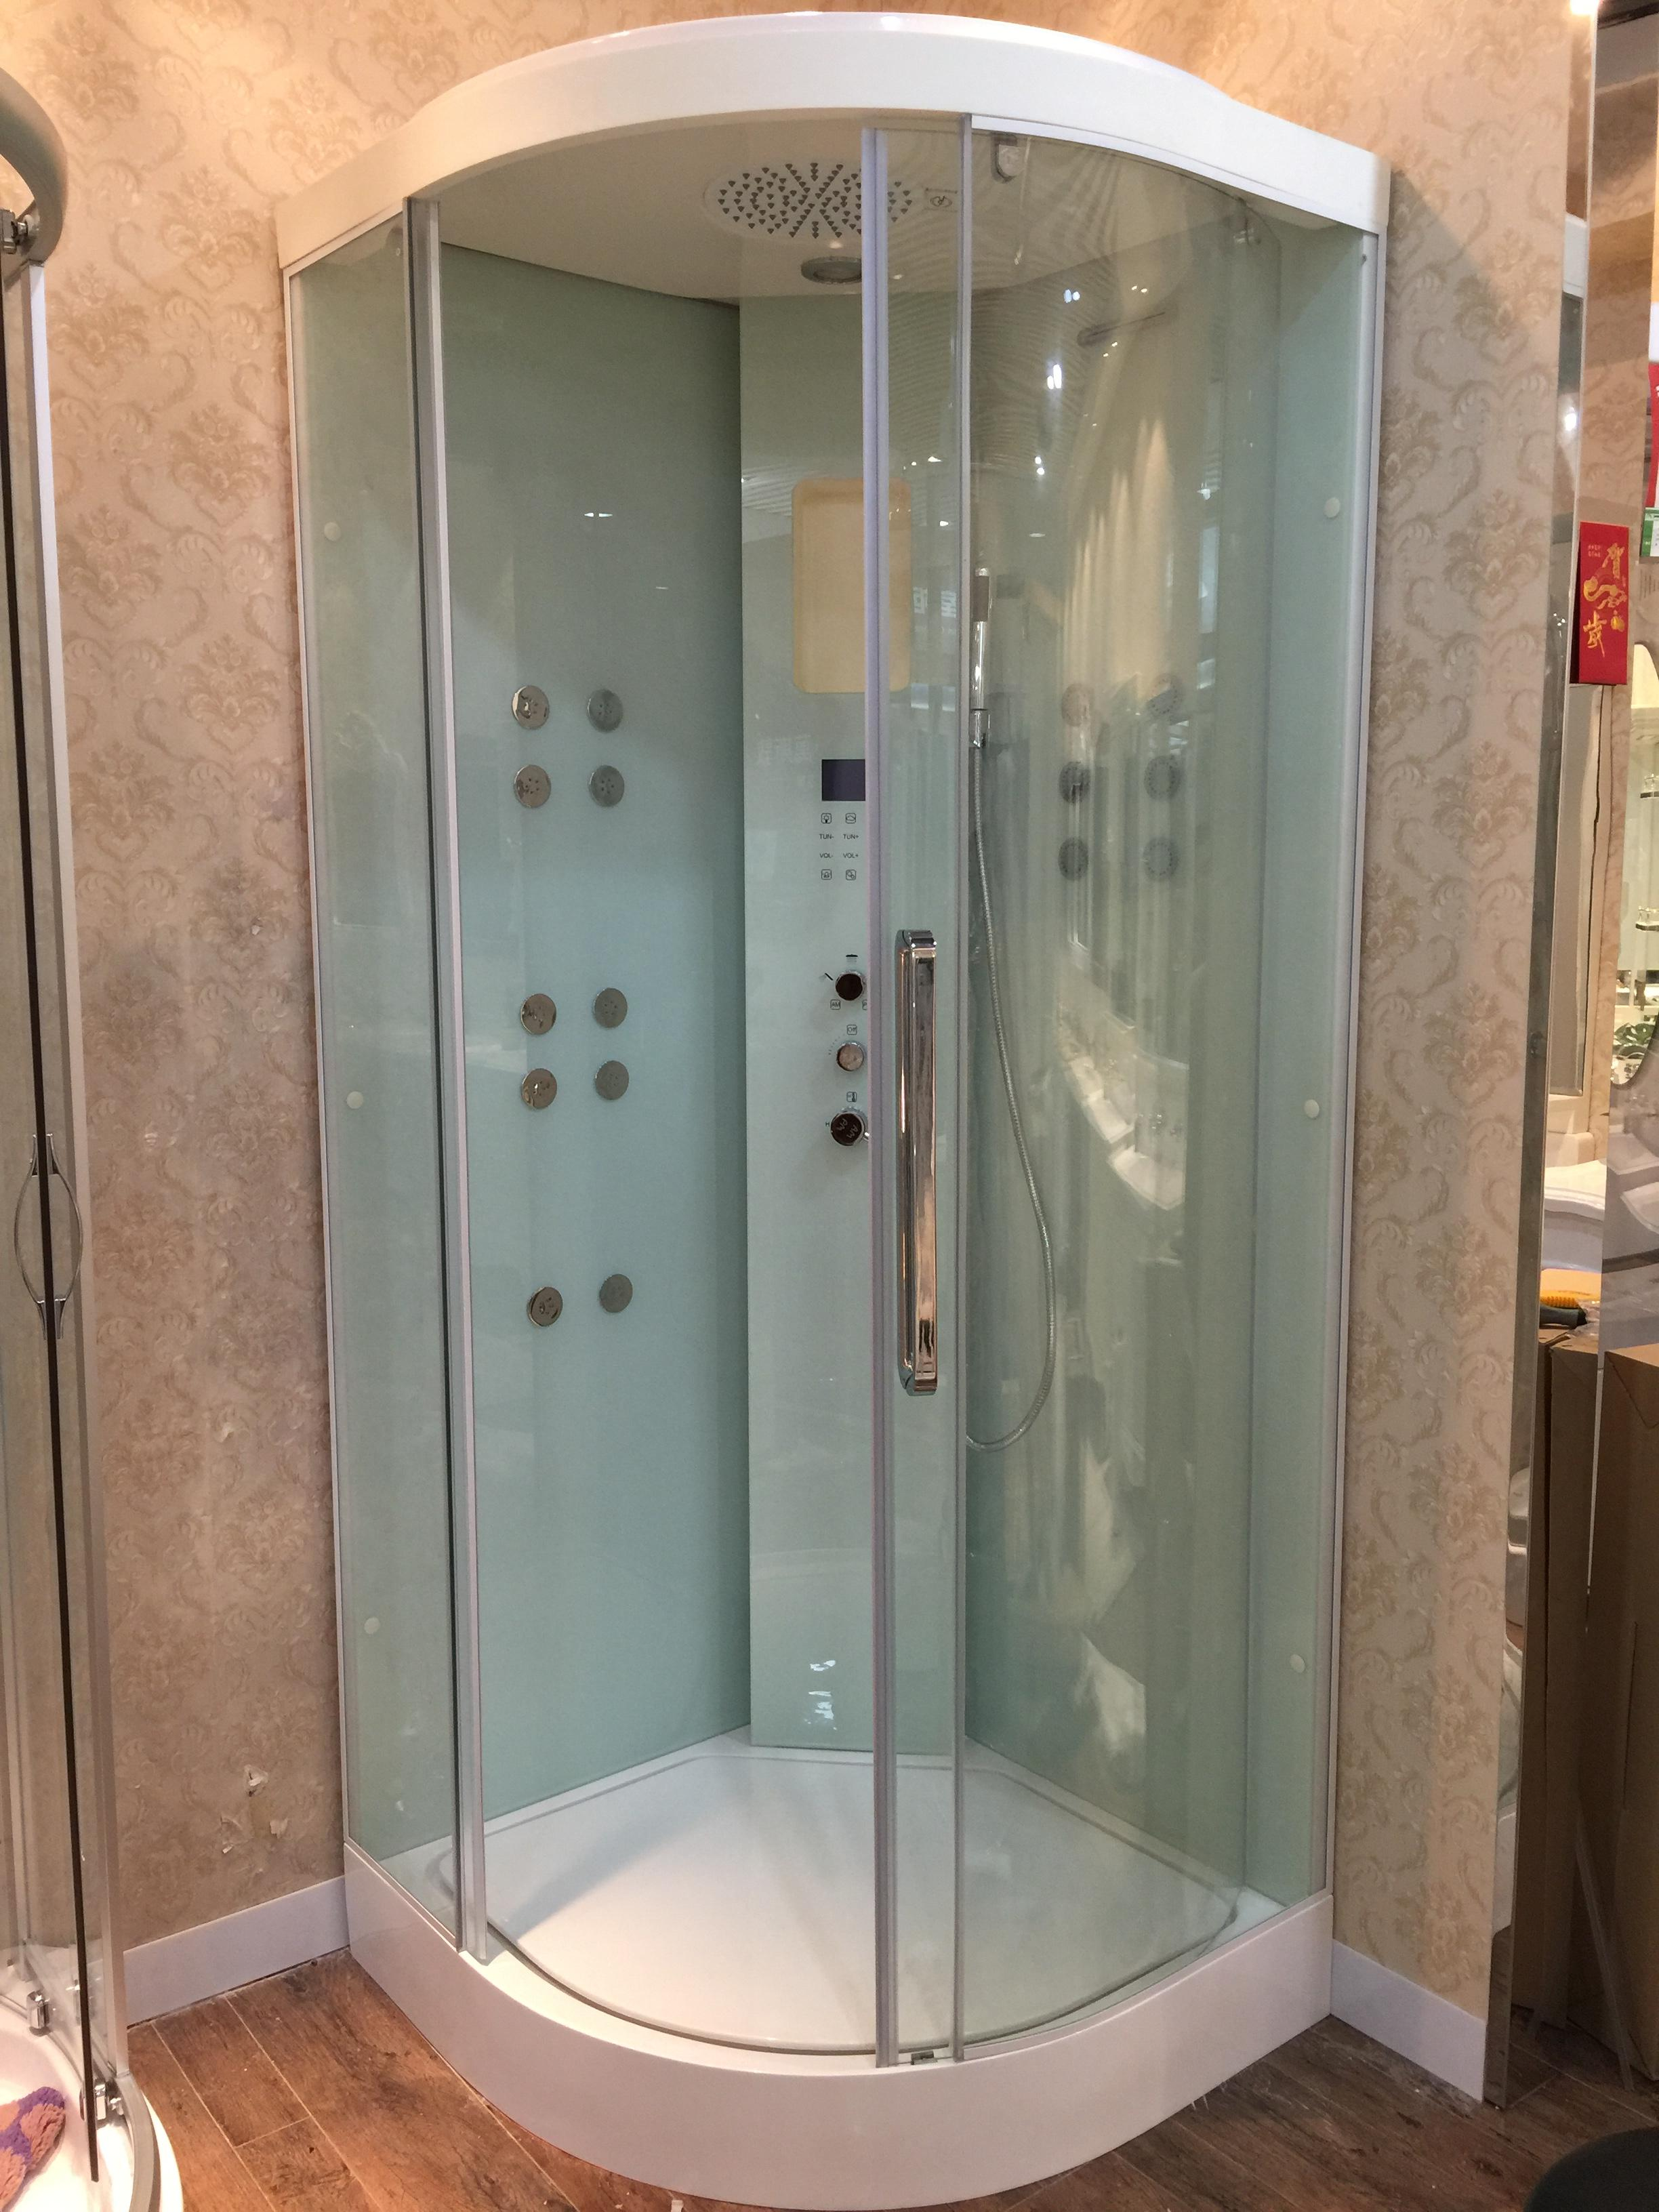 2017 ocean shipping wall corner sliding door steam shower 2017 ocean shipping wall corner sliding door steam shower enclosure with solid surface stone tray sauna cabin 900 900 2200mm 8055 from hansen peng